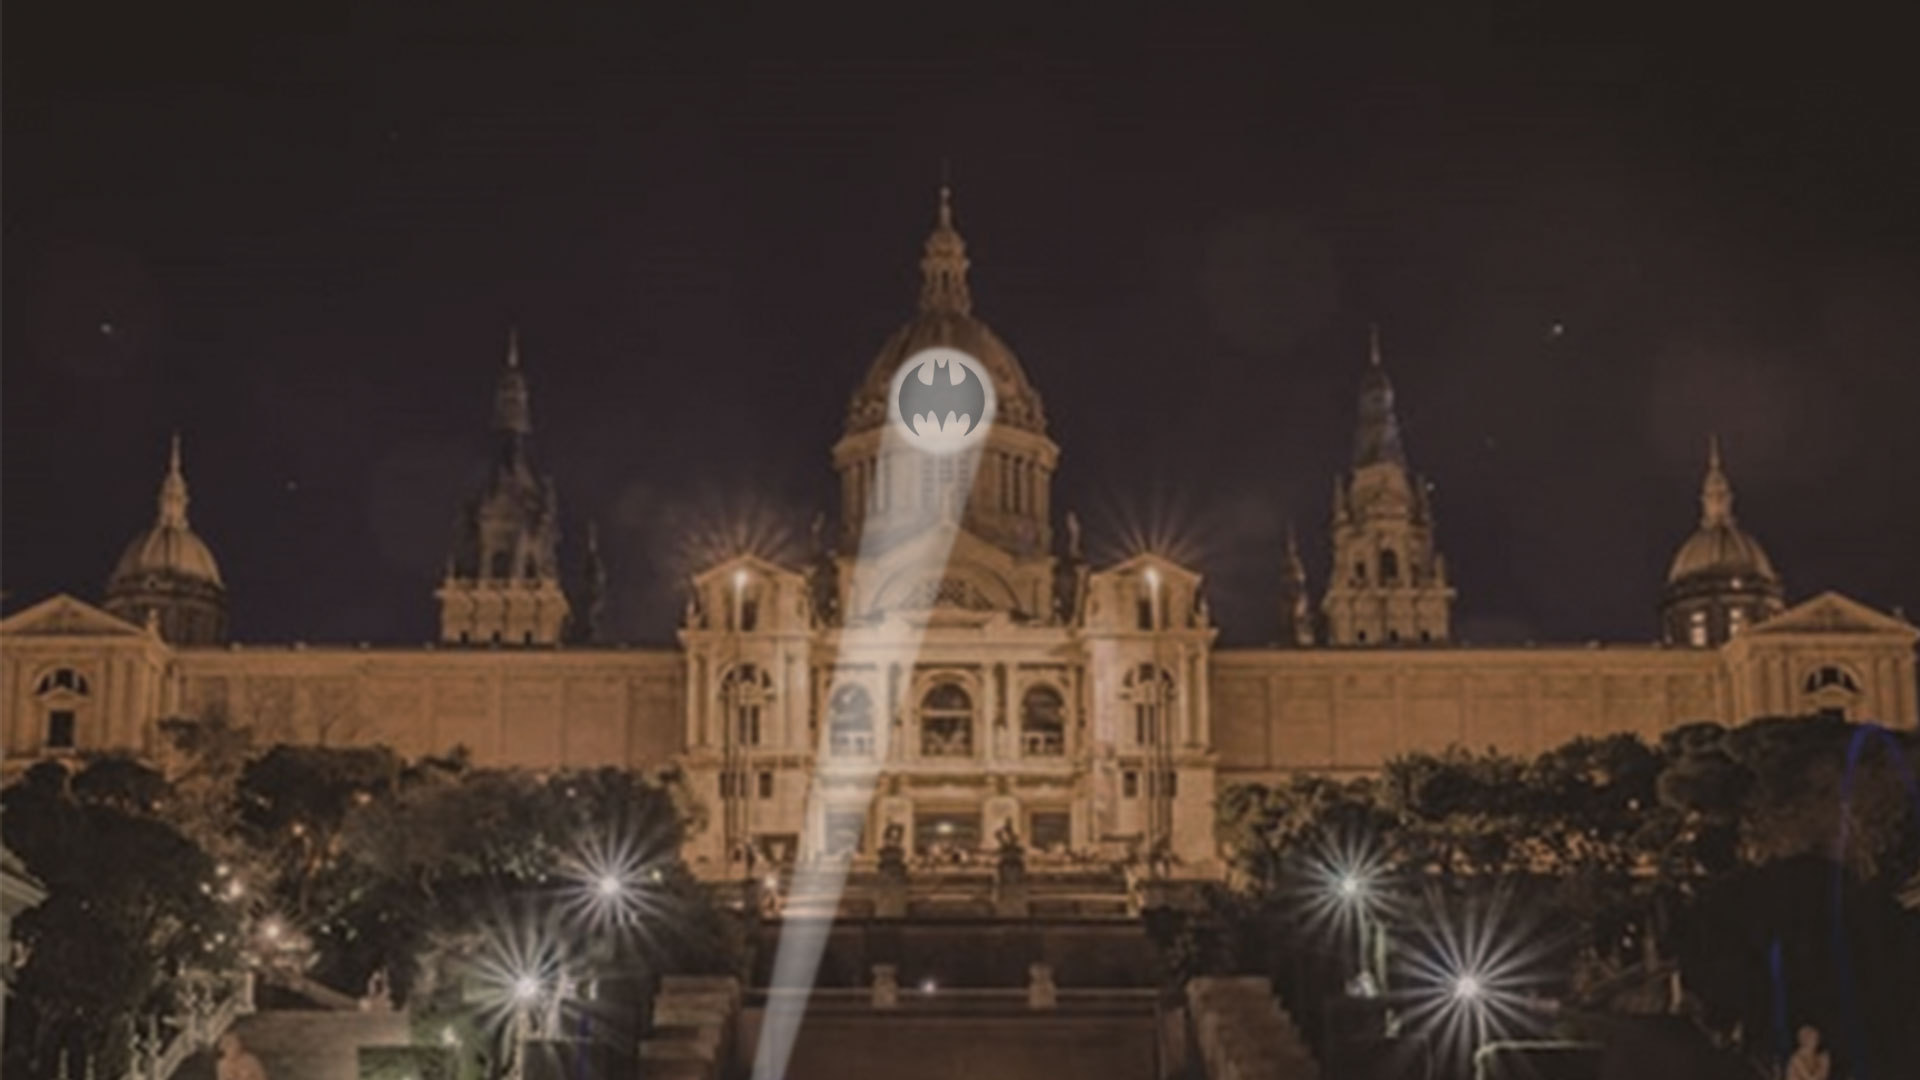 Bat-Signals to light up skies in cities across the world